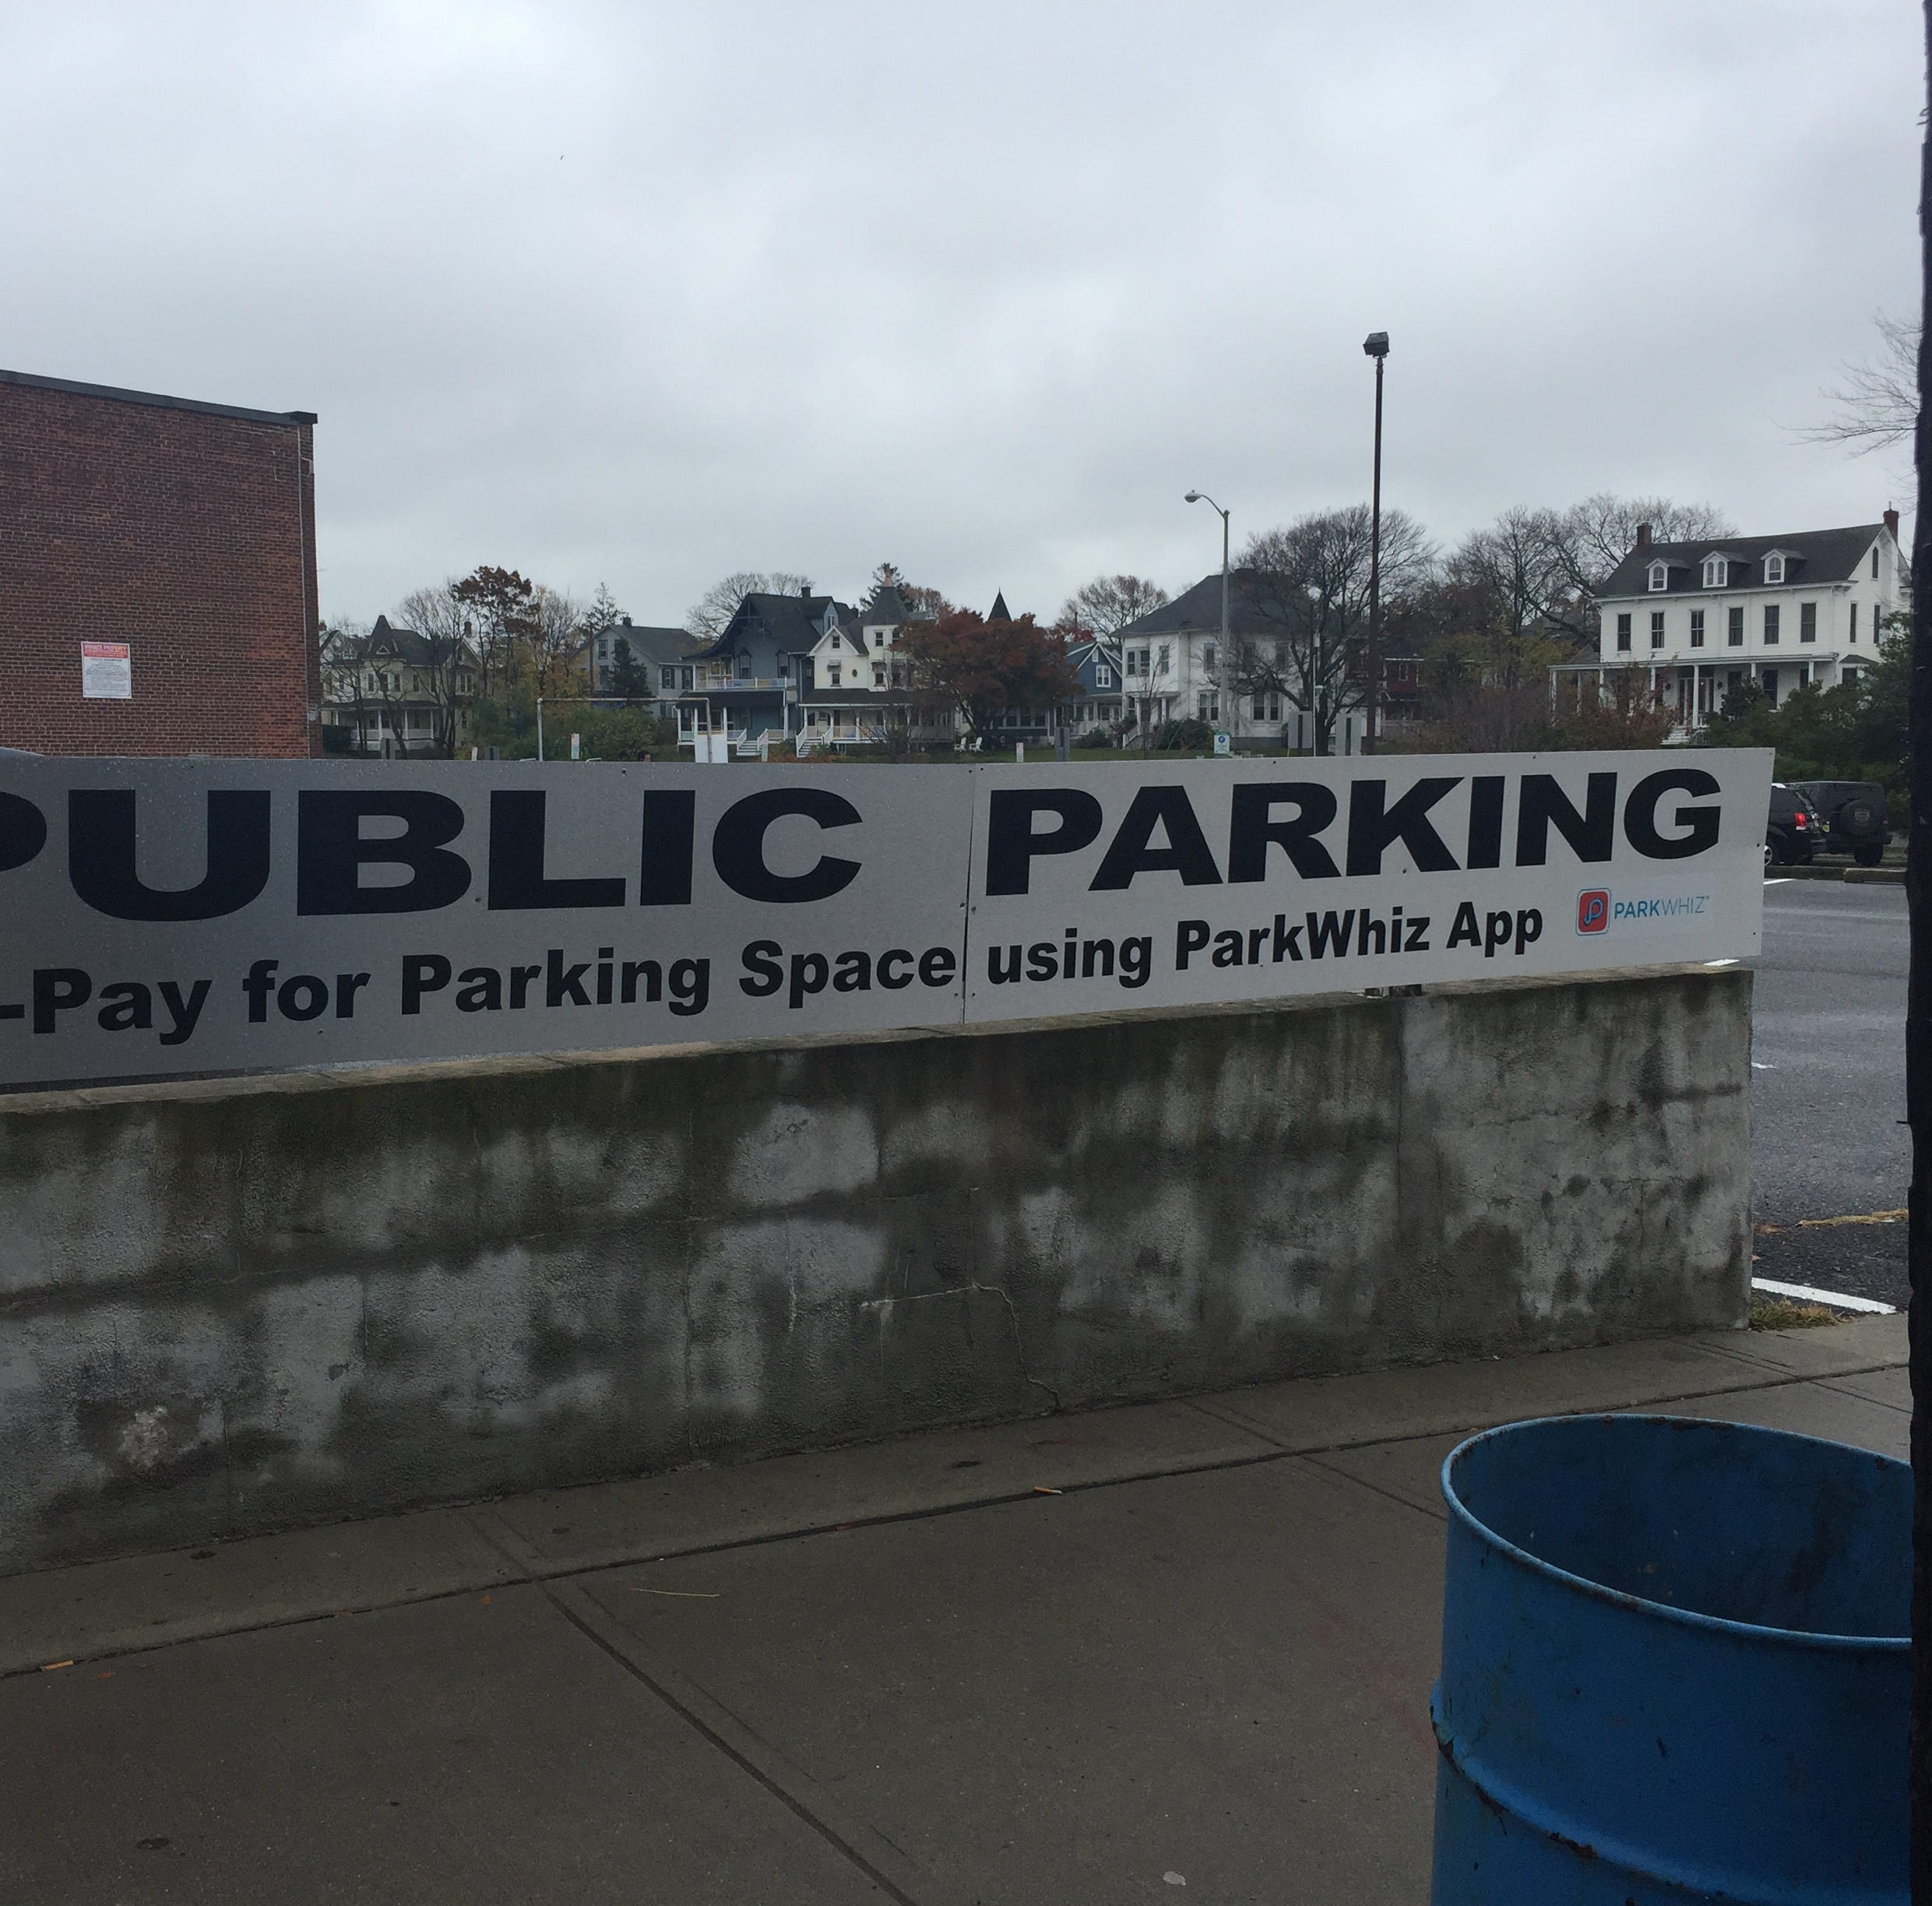 Asbury Park parking: Did you pay $225 for parking in downtown Asbury Park?